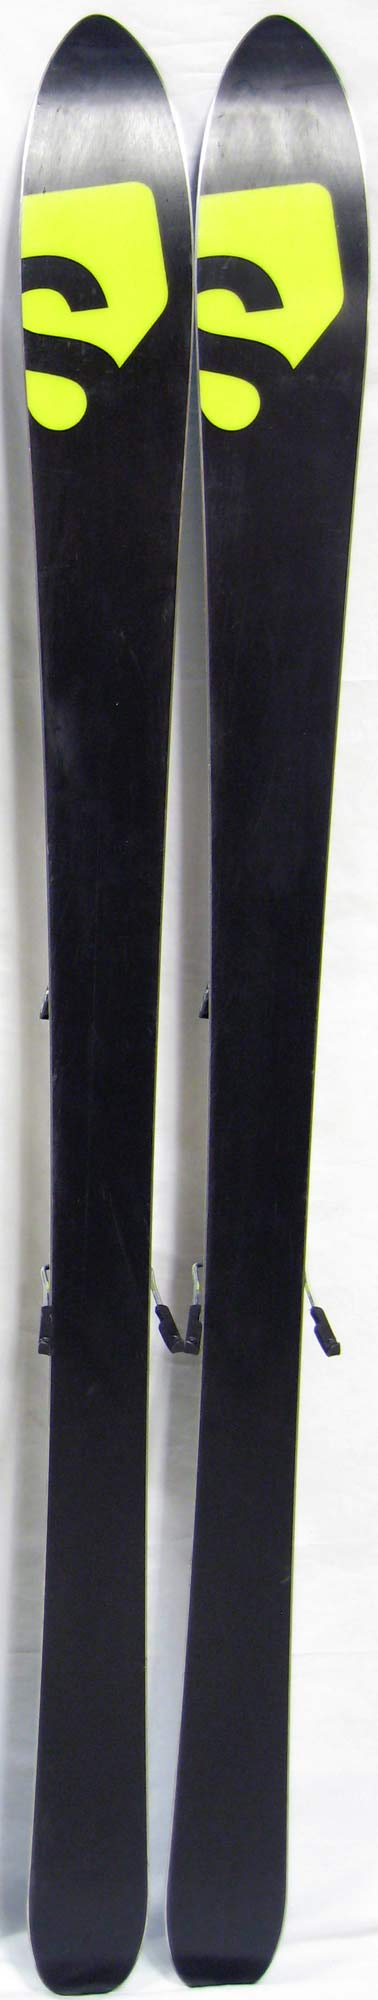 Bases of 2012 Salomon BBR 8.9 Skis For Sale